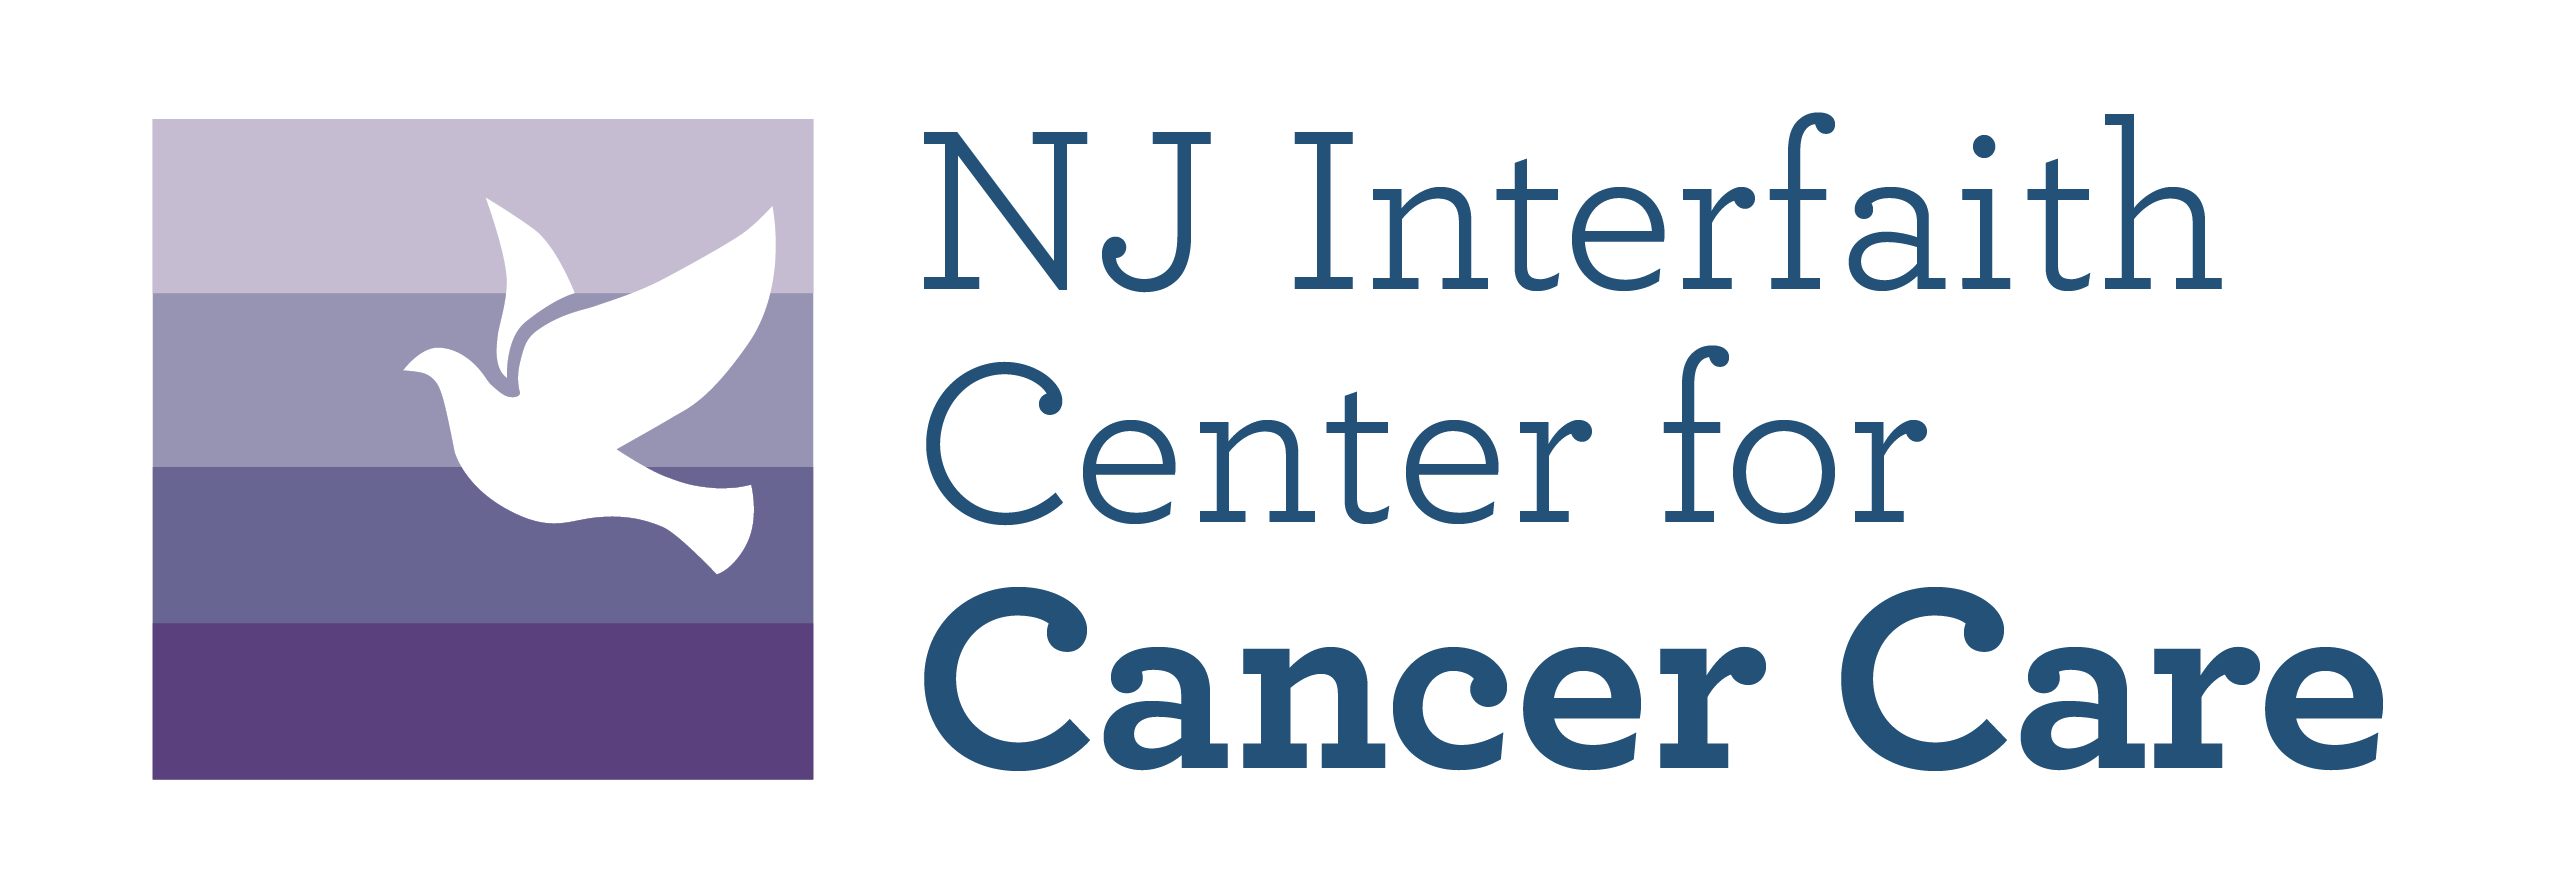 NJIC3